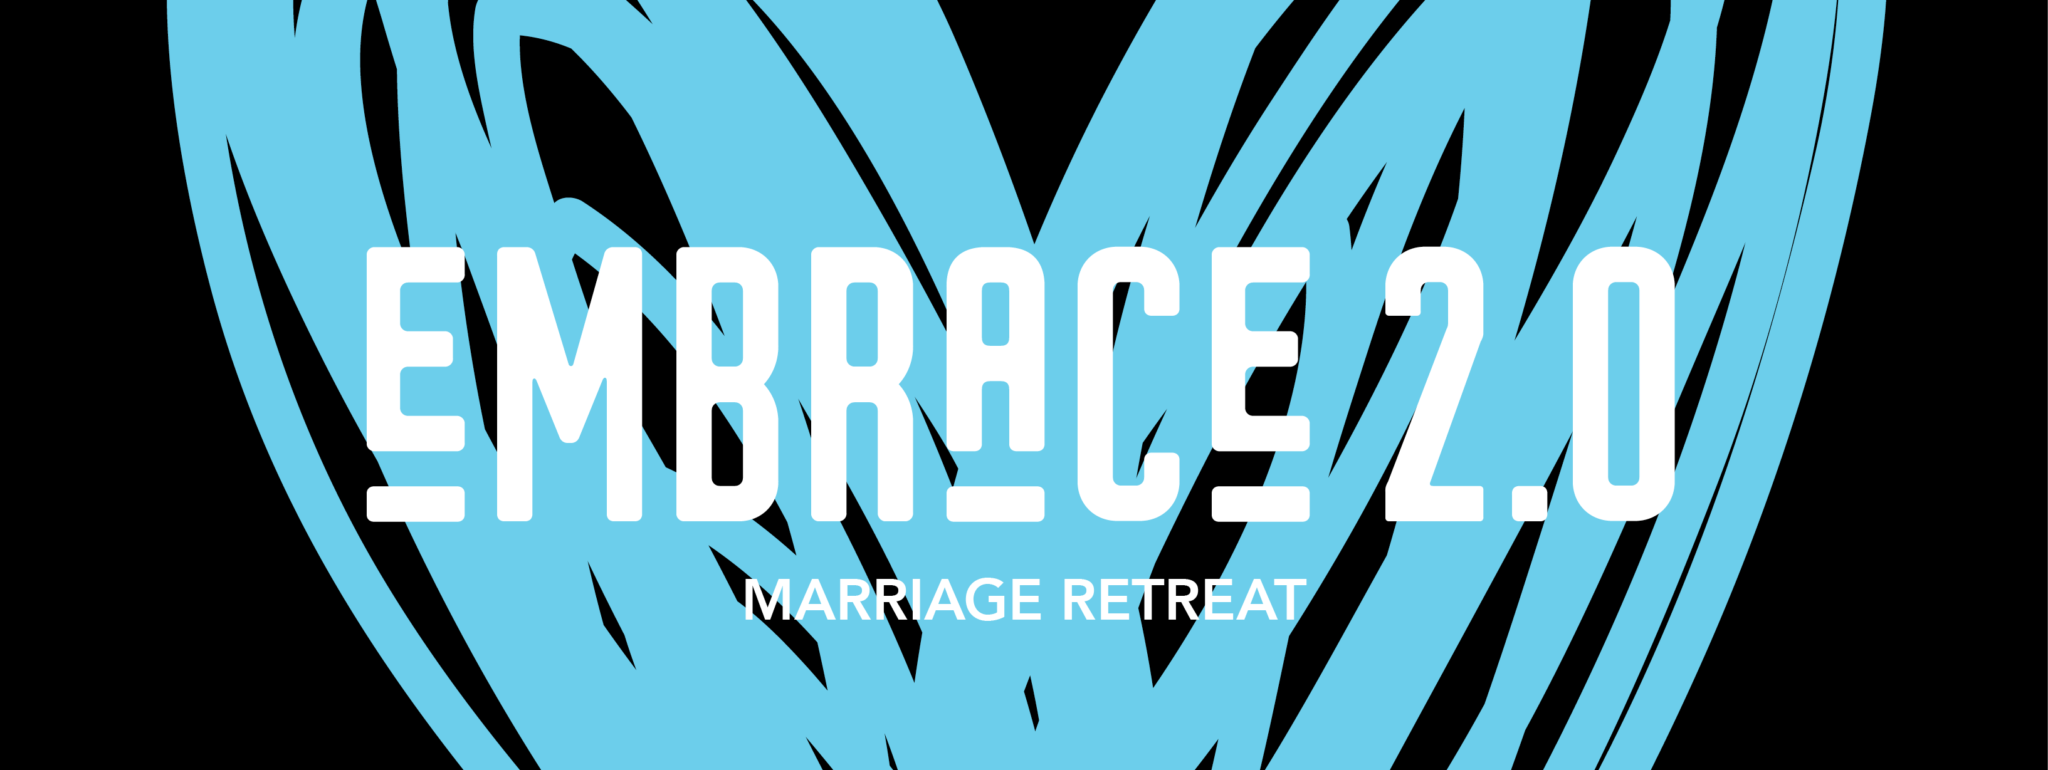 C3 Marriage Conference